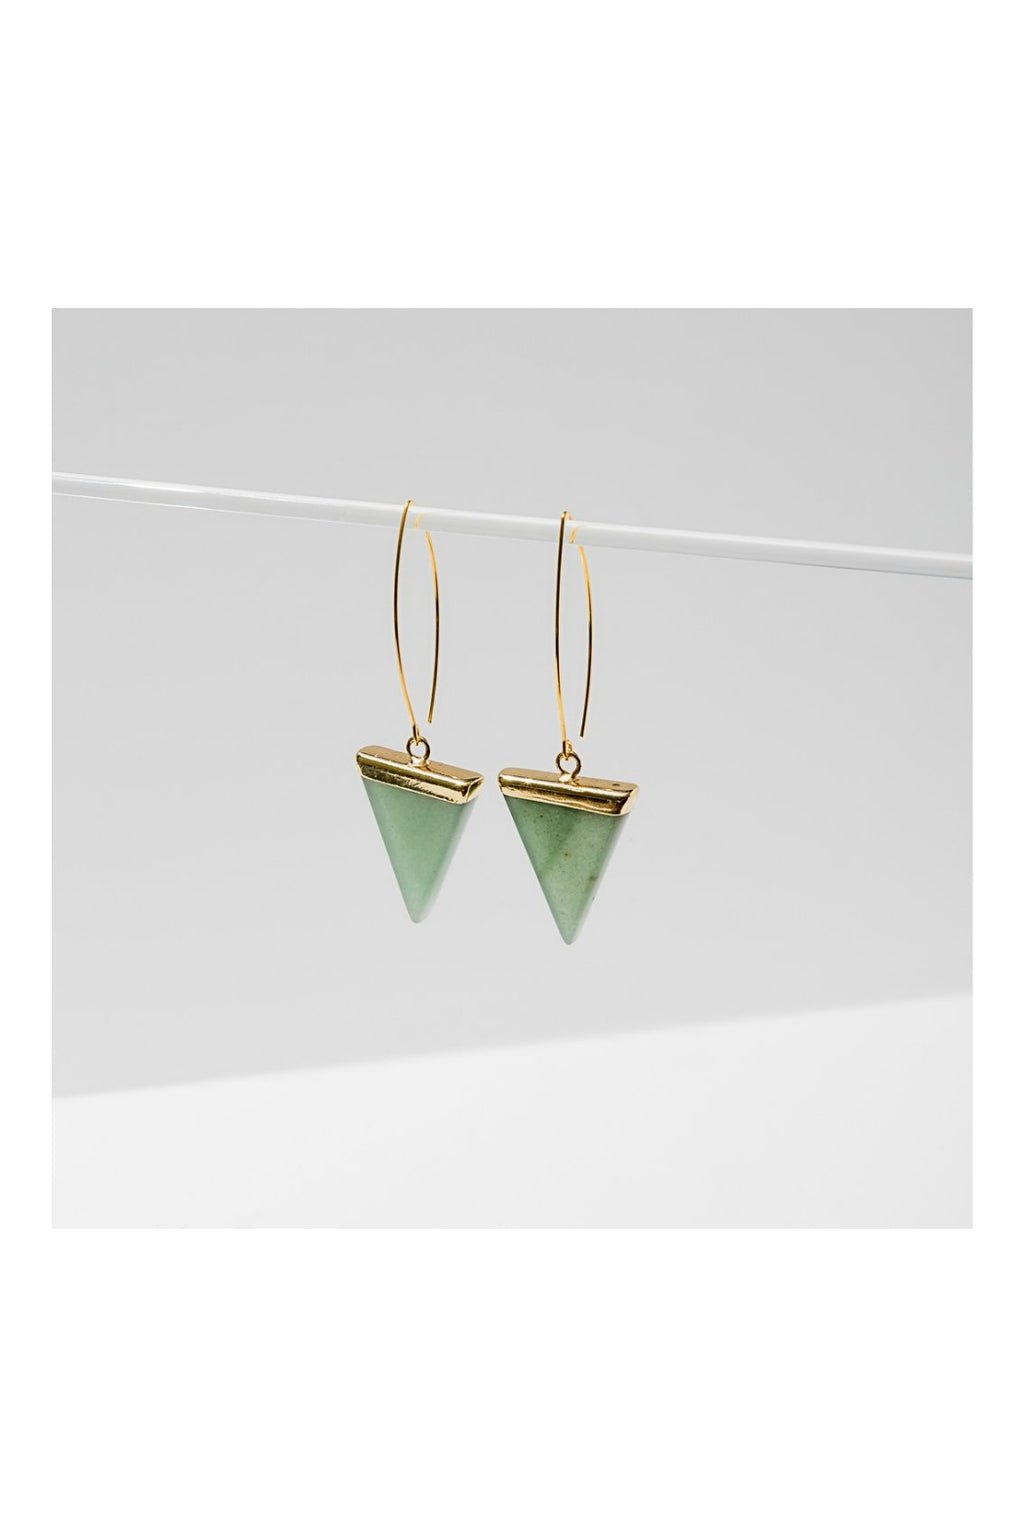 Larissa Loden Triune Earrings - Green Aventurine